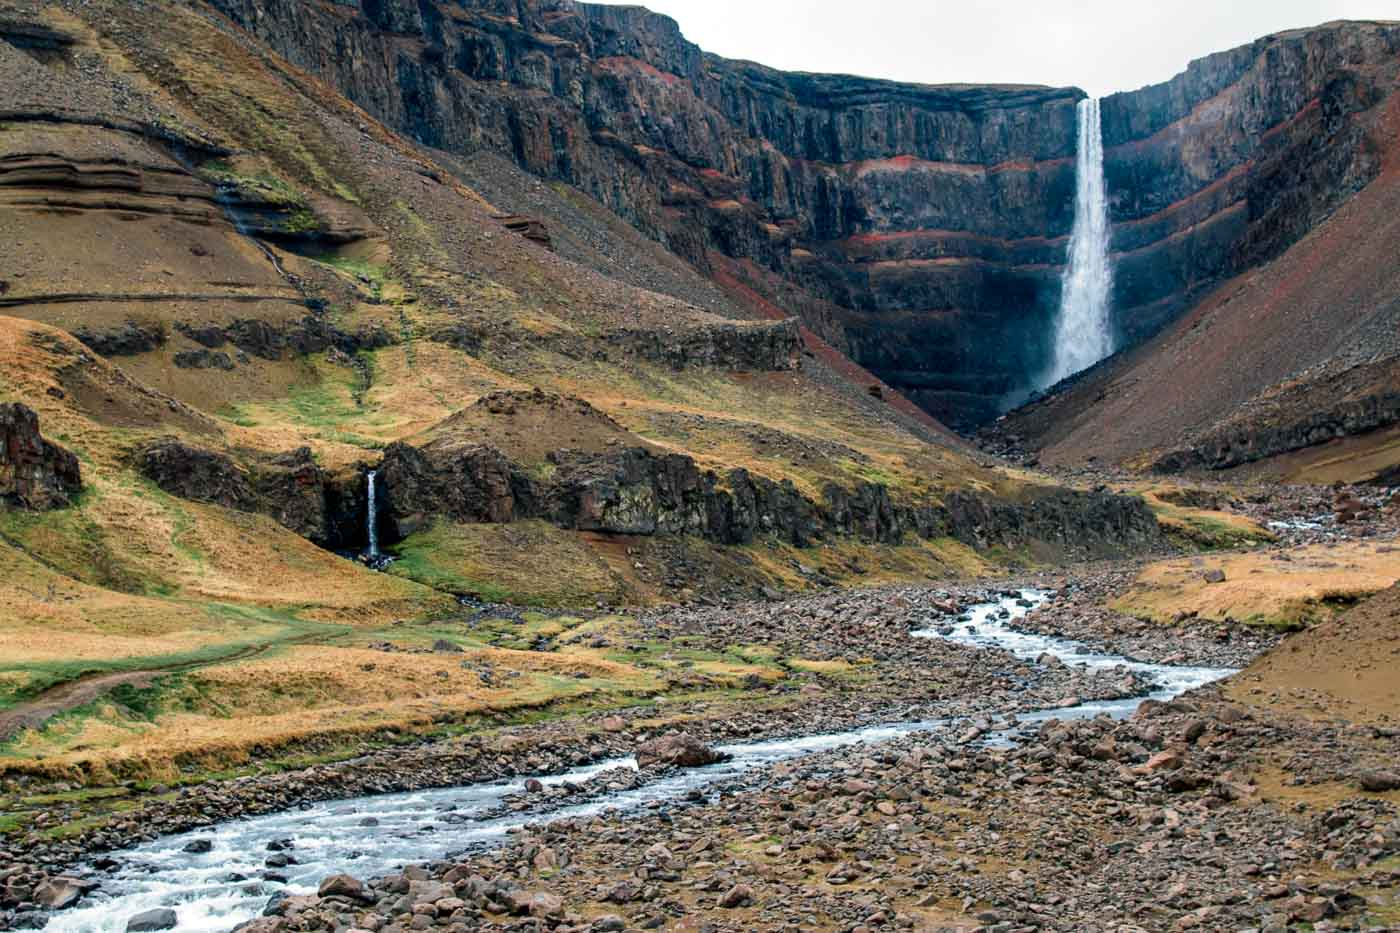 River flowing through a valley in front of the Hengifoss waterfall